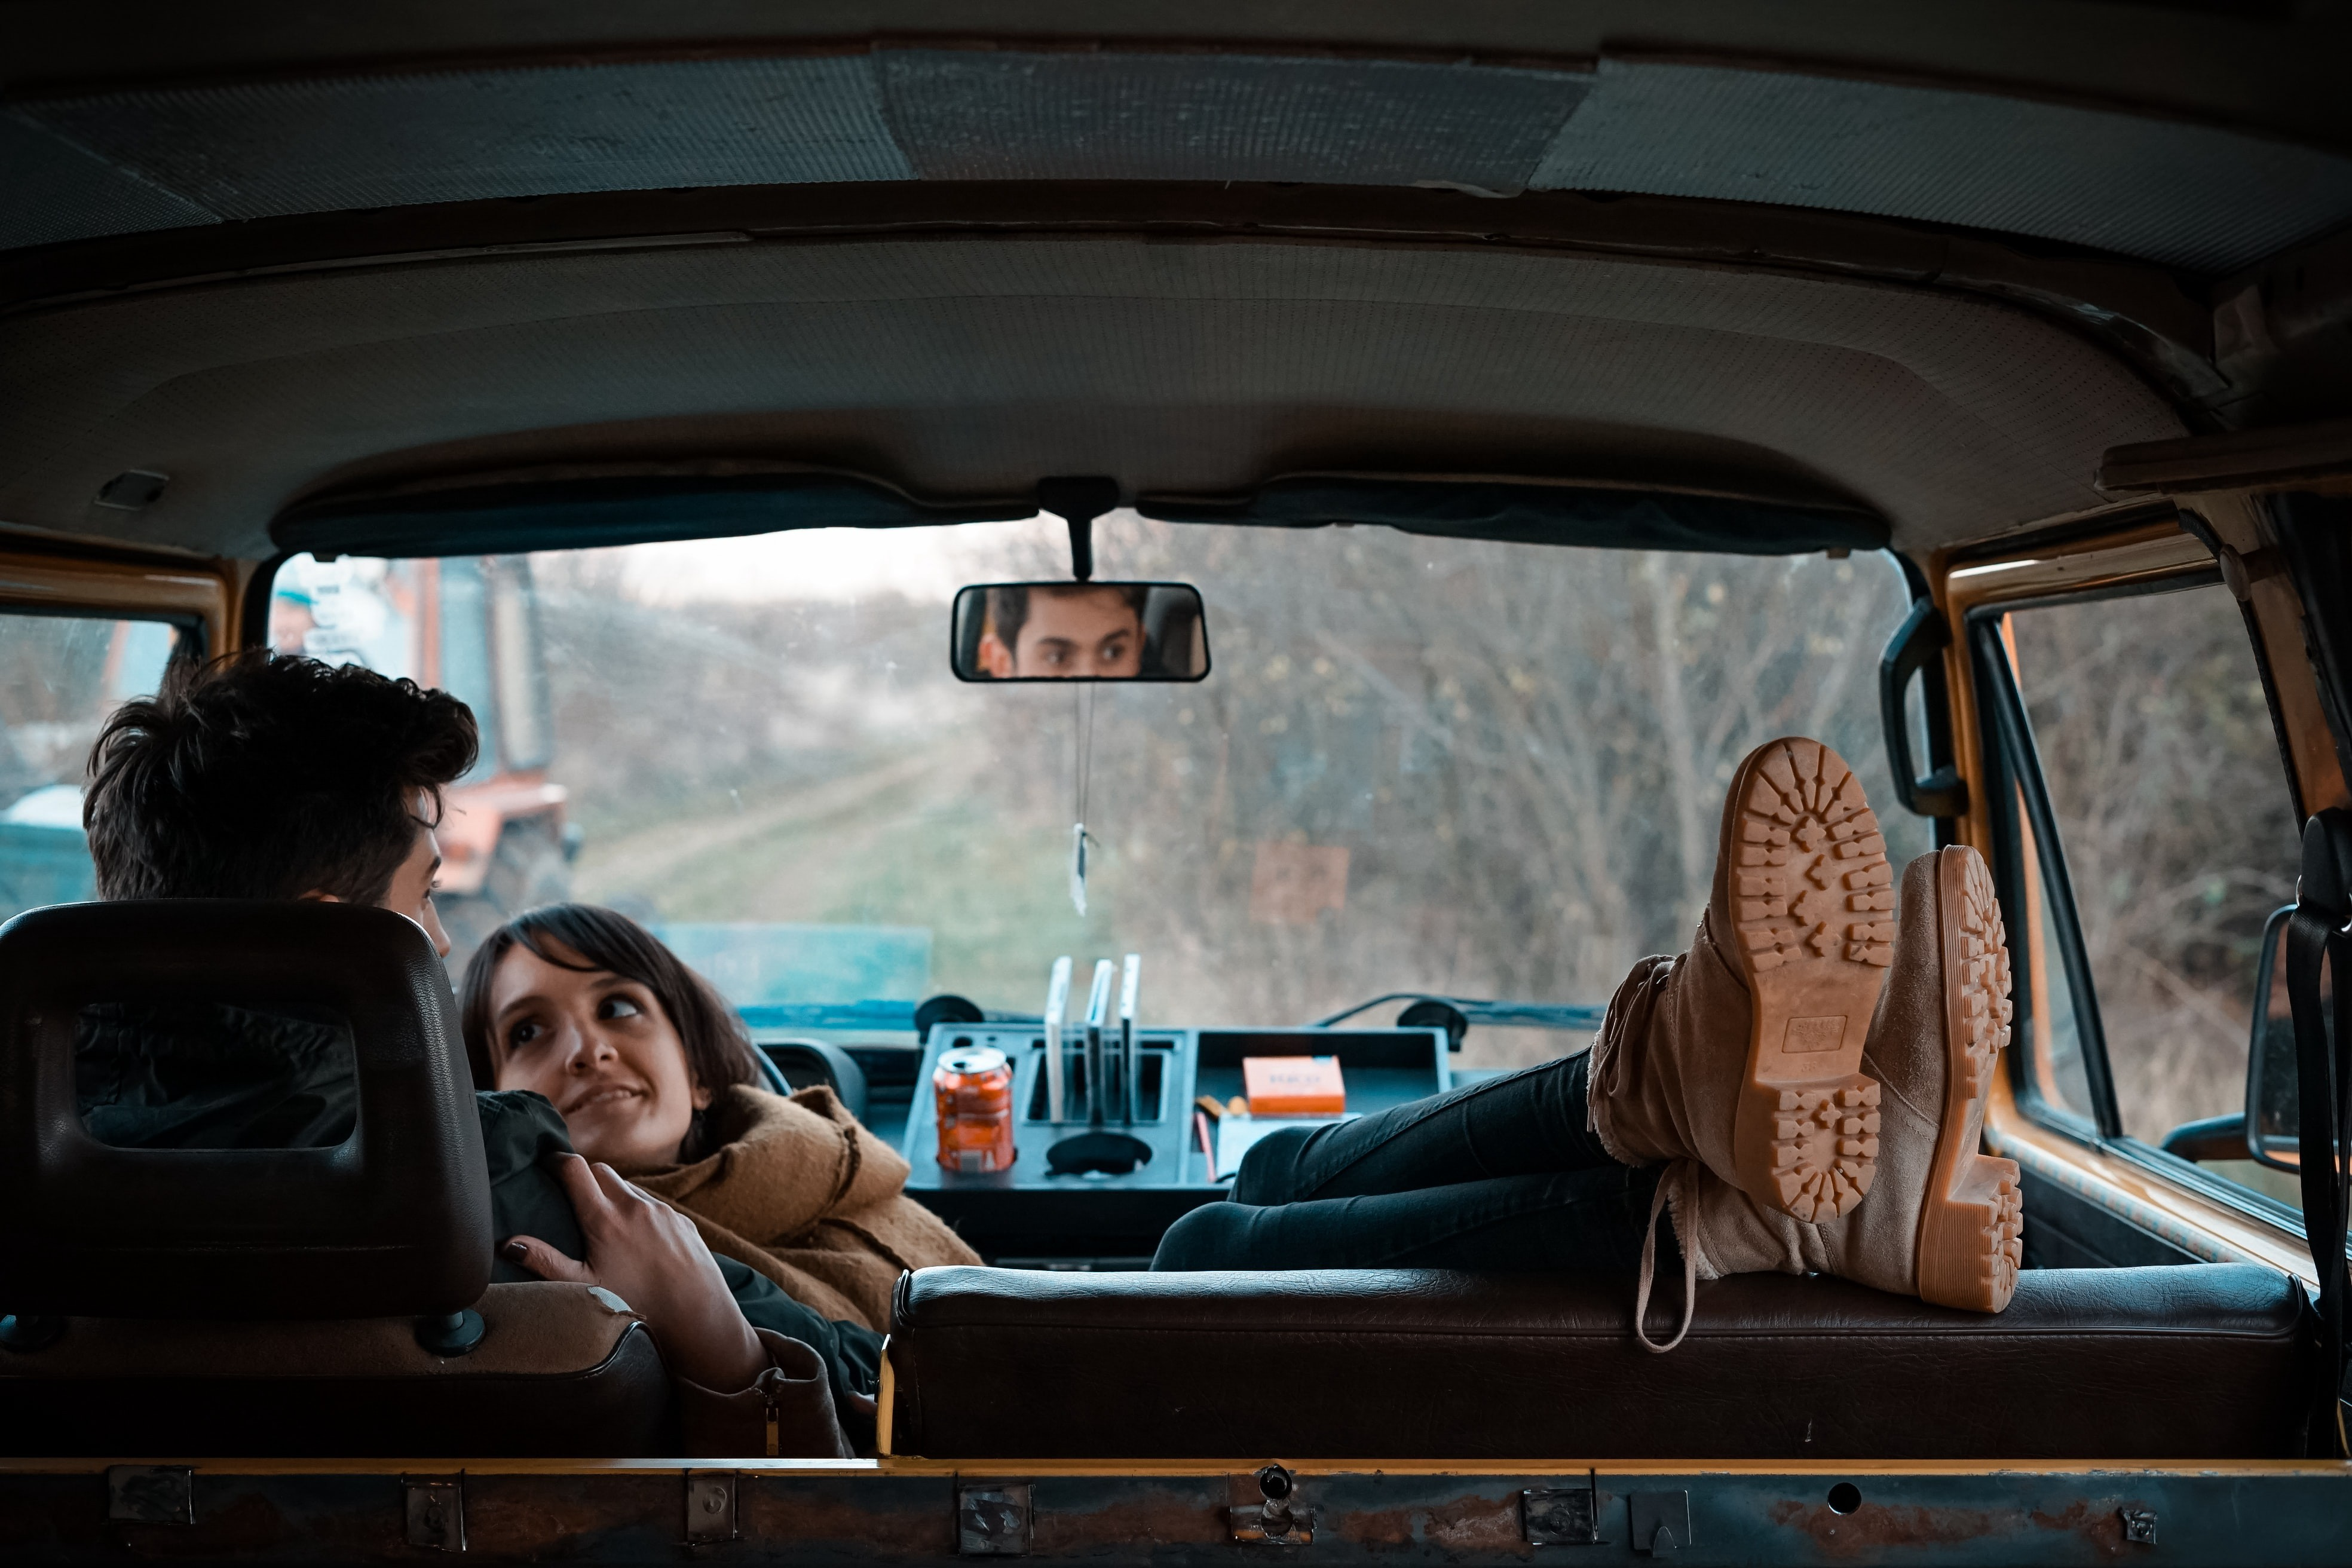 Couple relaxing in a car